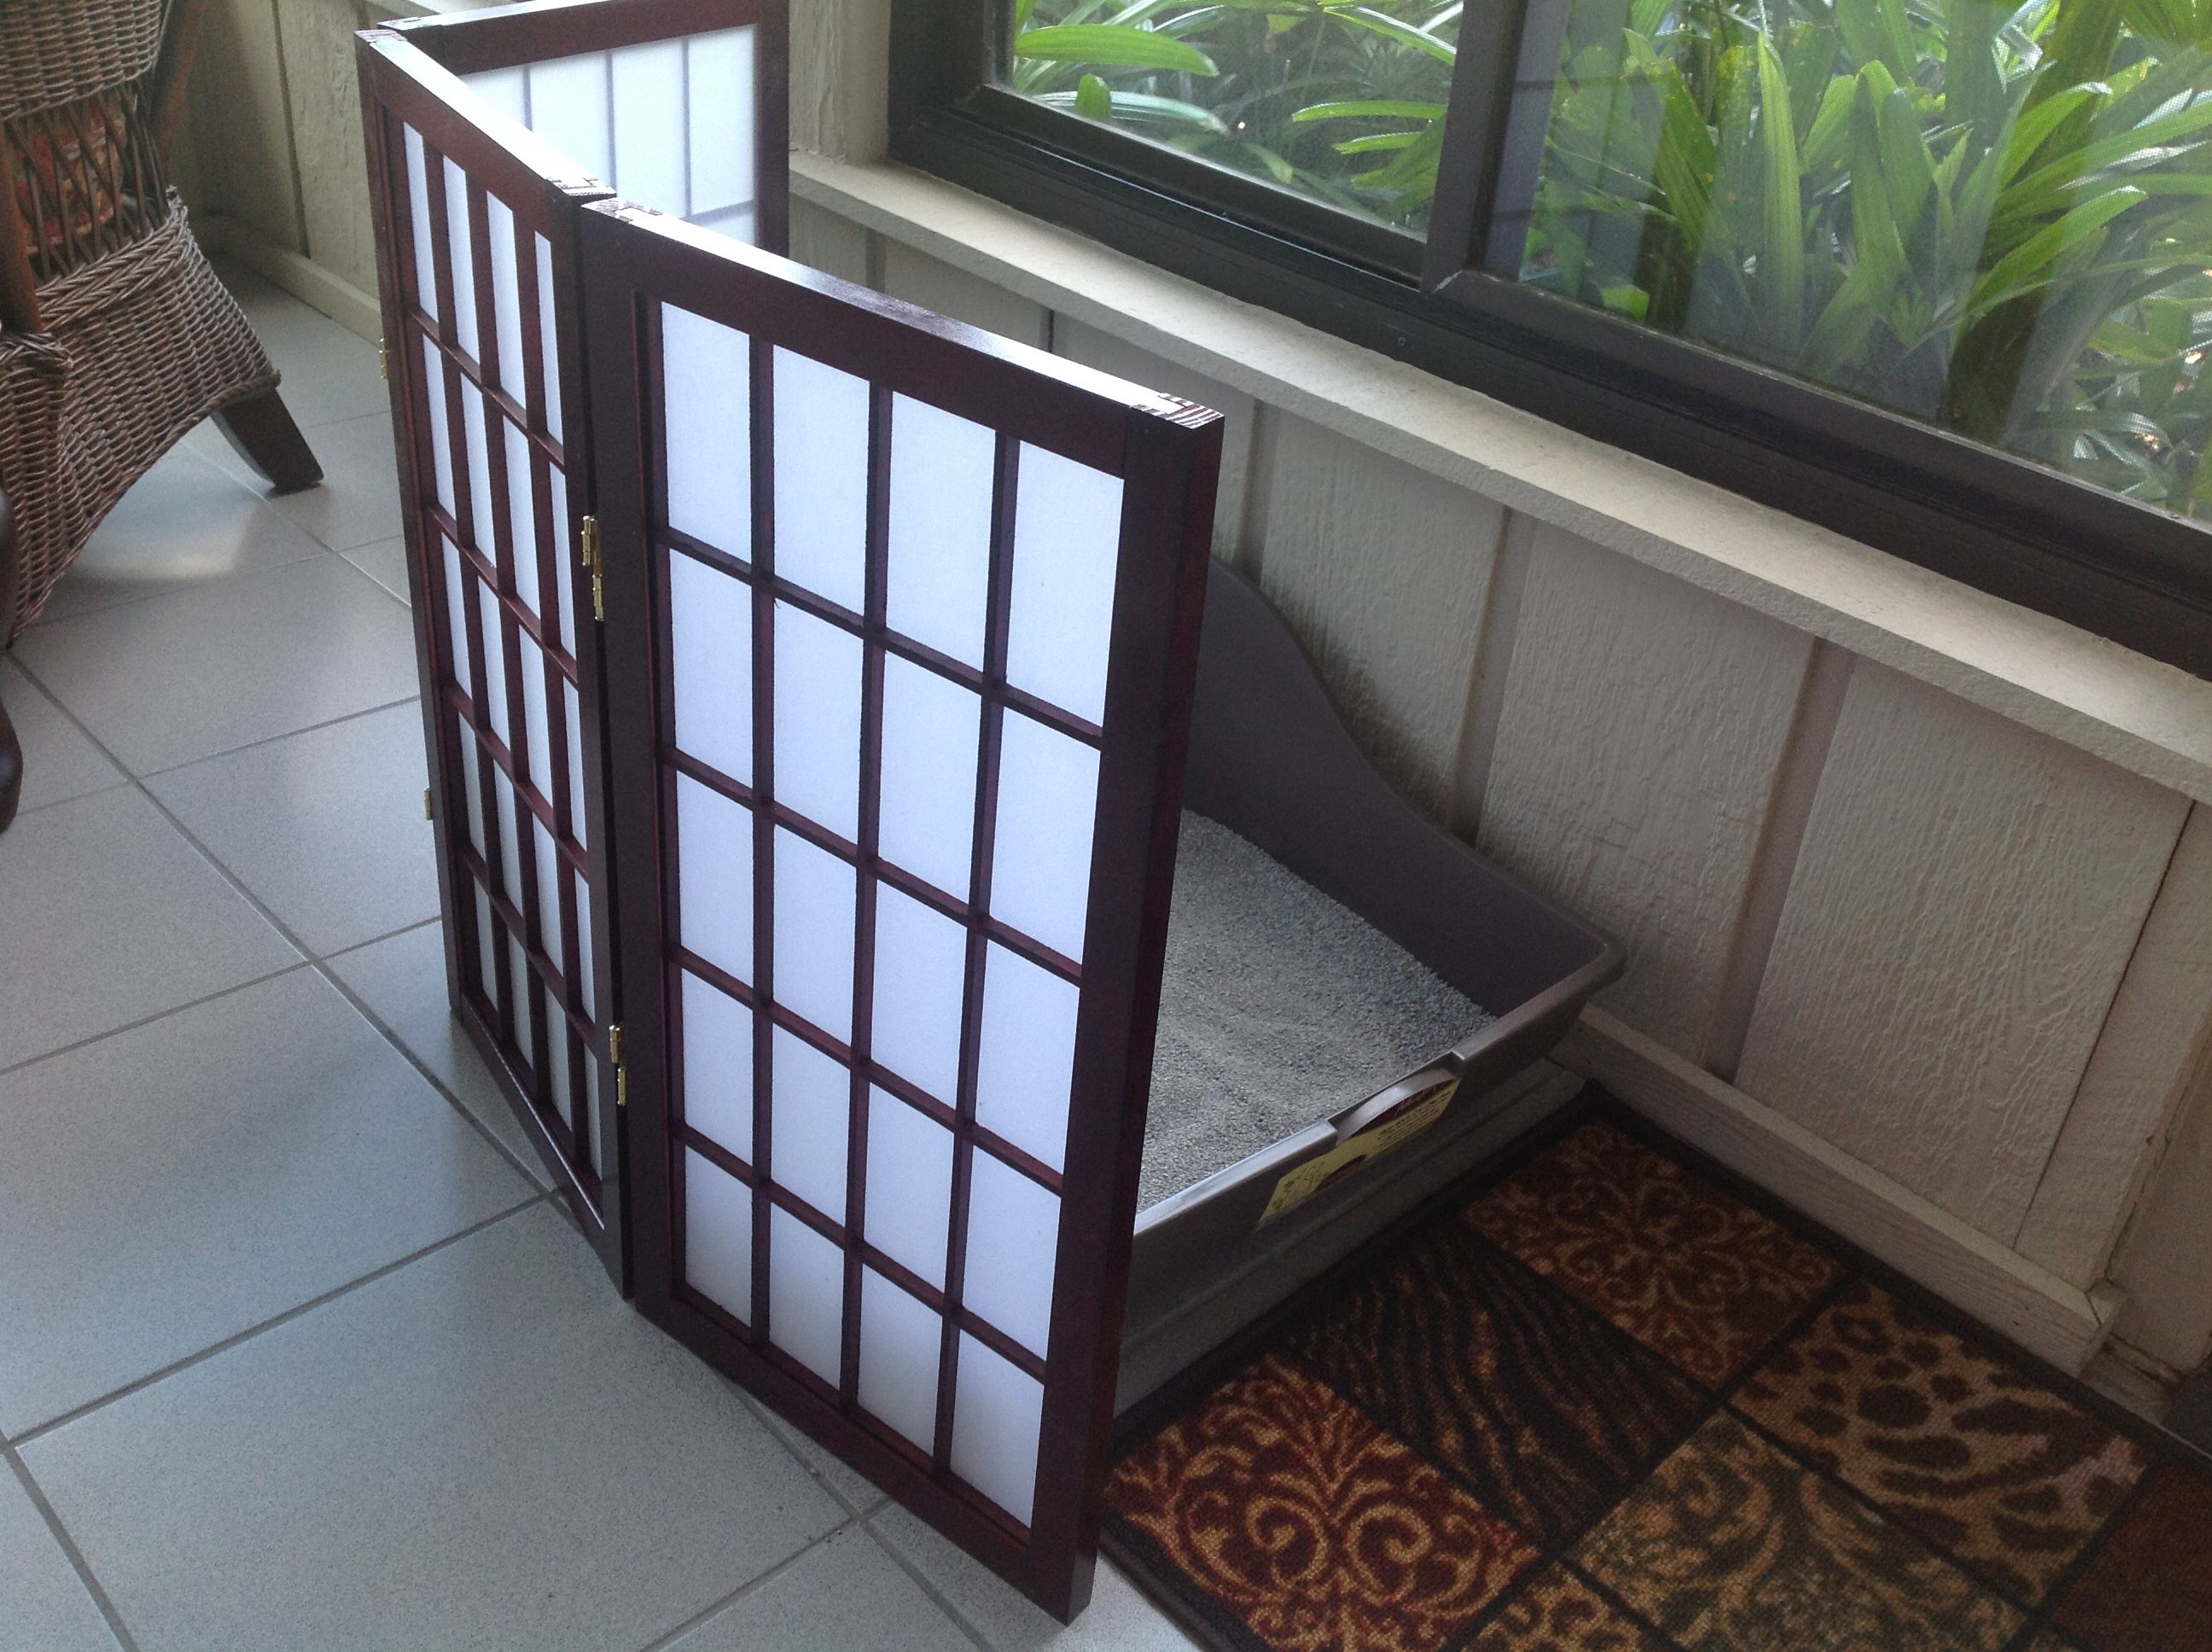 2ft tall folding screen in 3 panels. This customer uses it